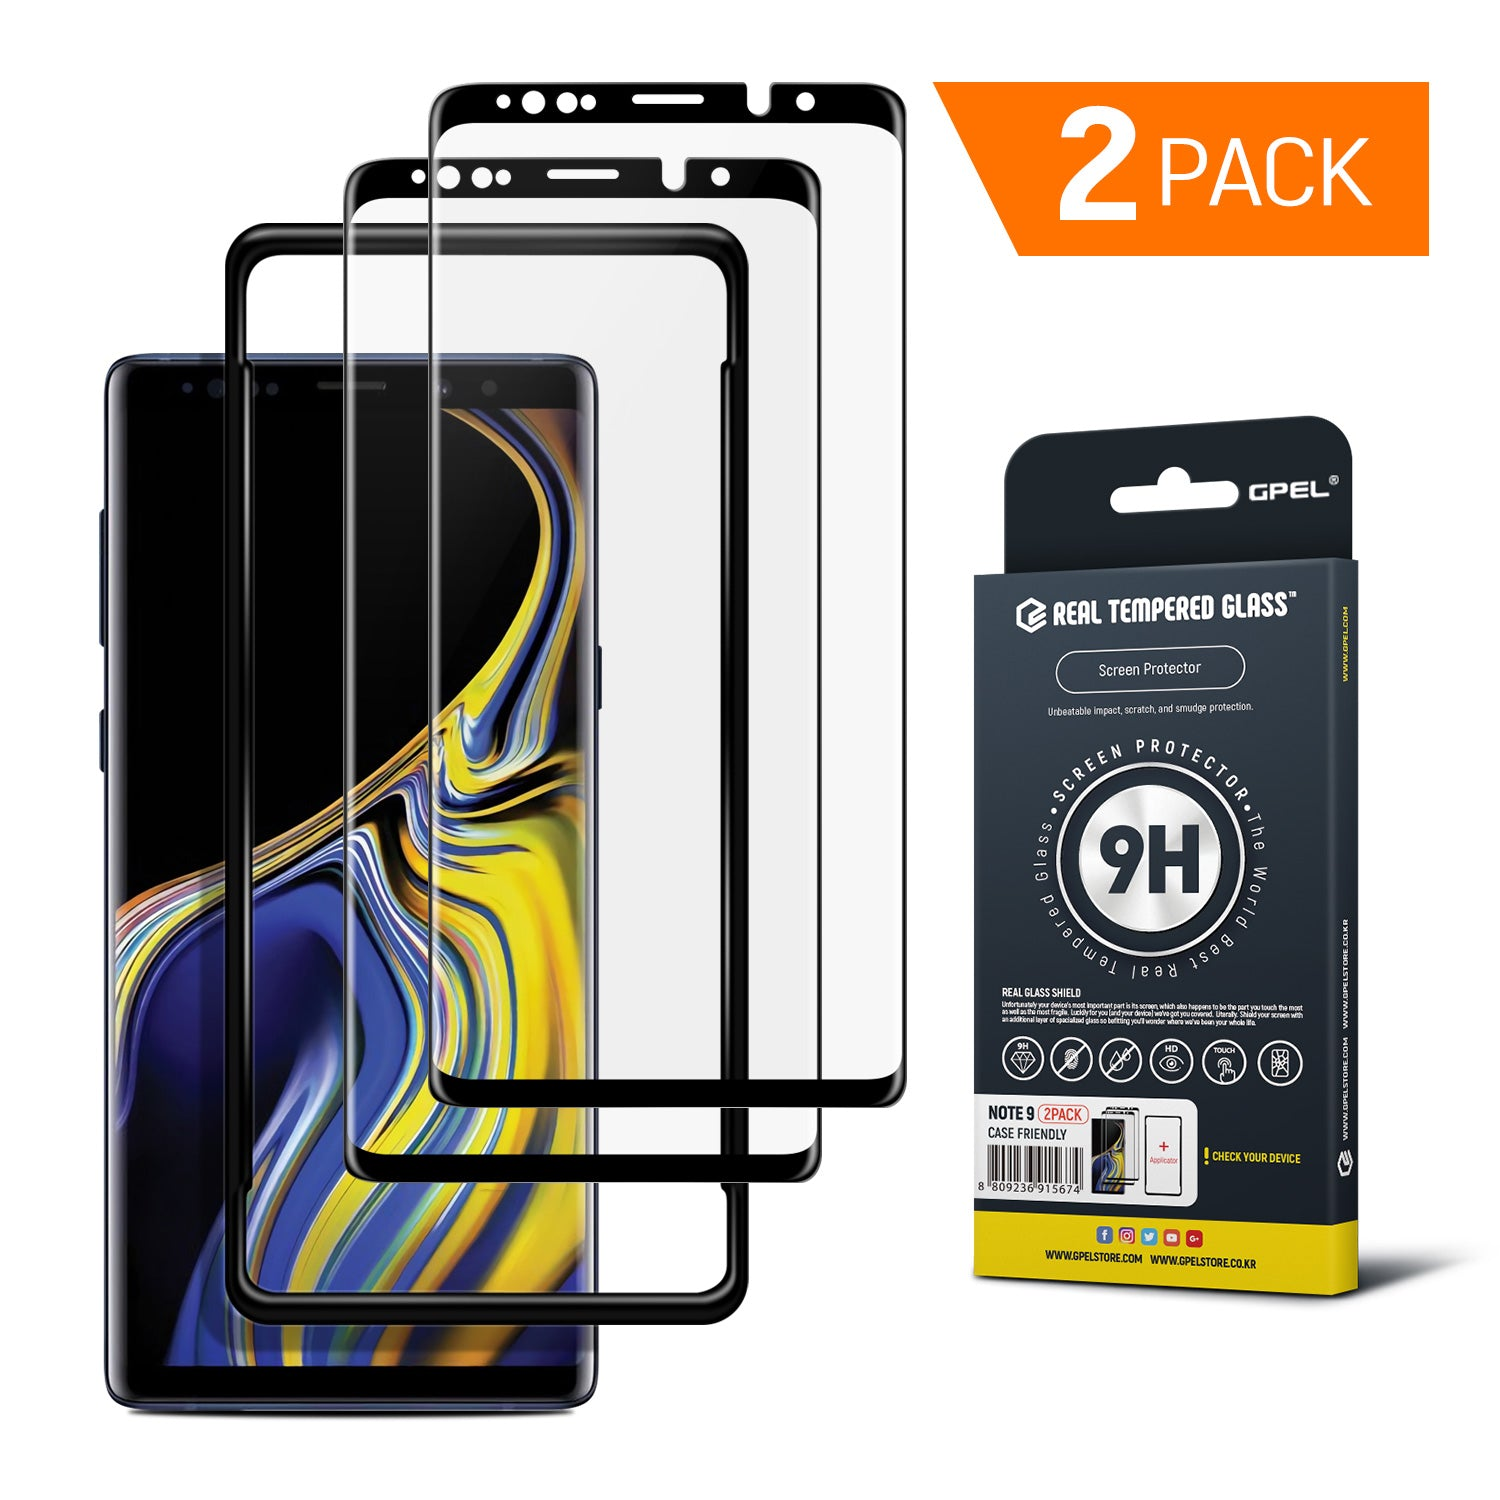 reputable site 14290 491f5 Galaxy Note 9 - Full Coverage Tempered Glass Screen Protector (2-PACK)